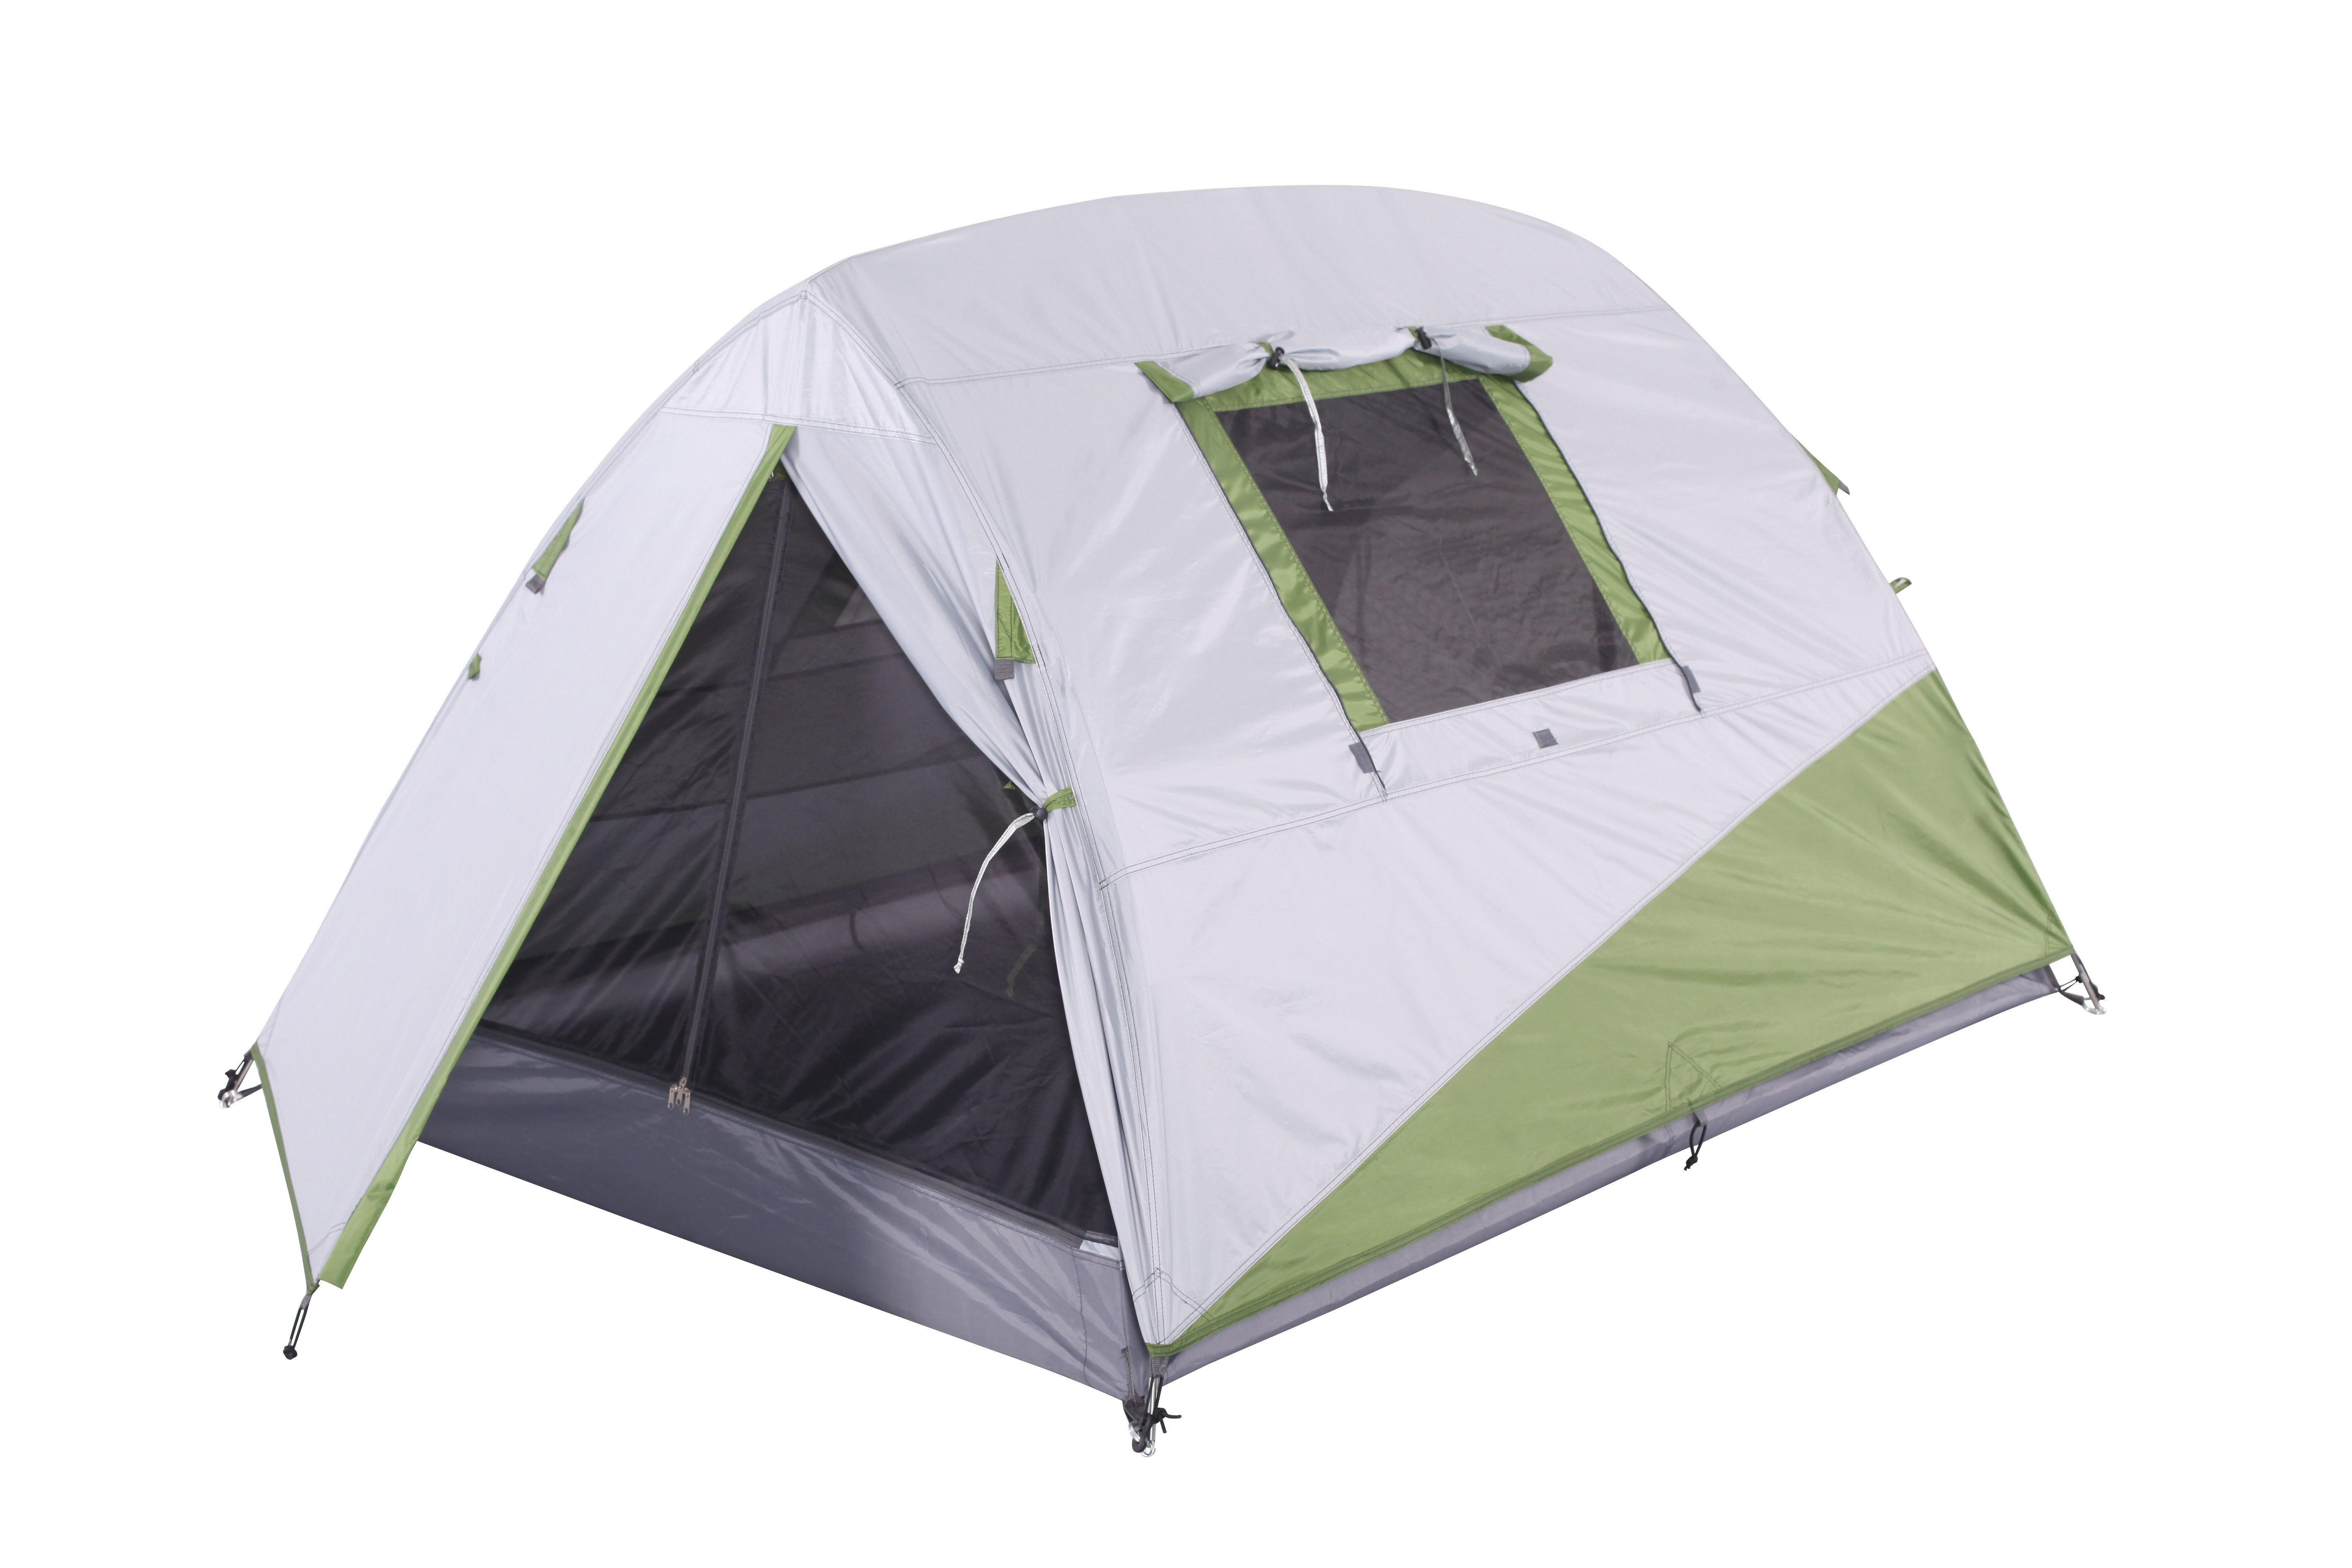 oztrail 4v dome tent instructions